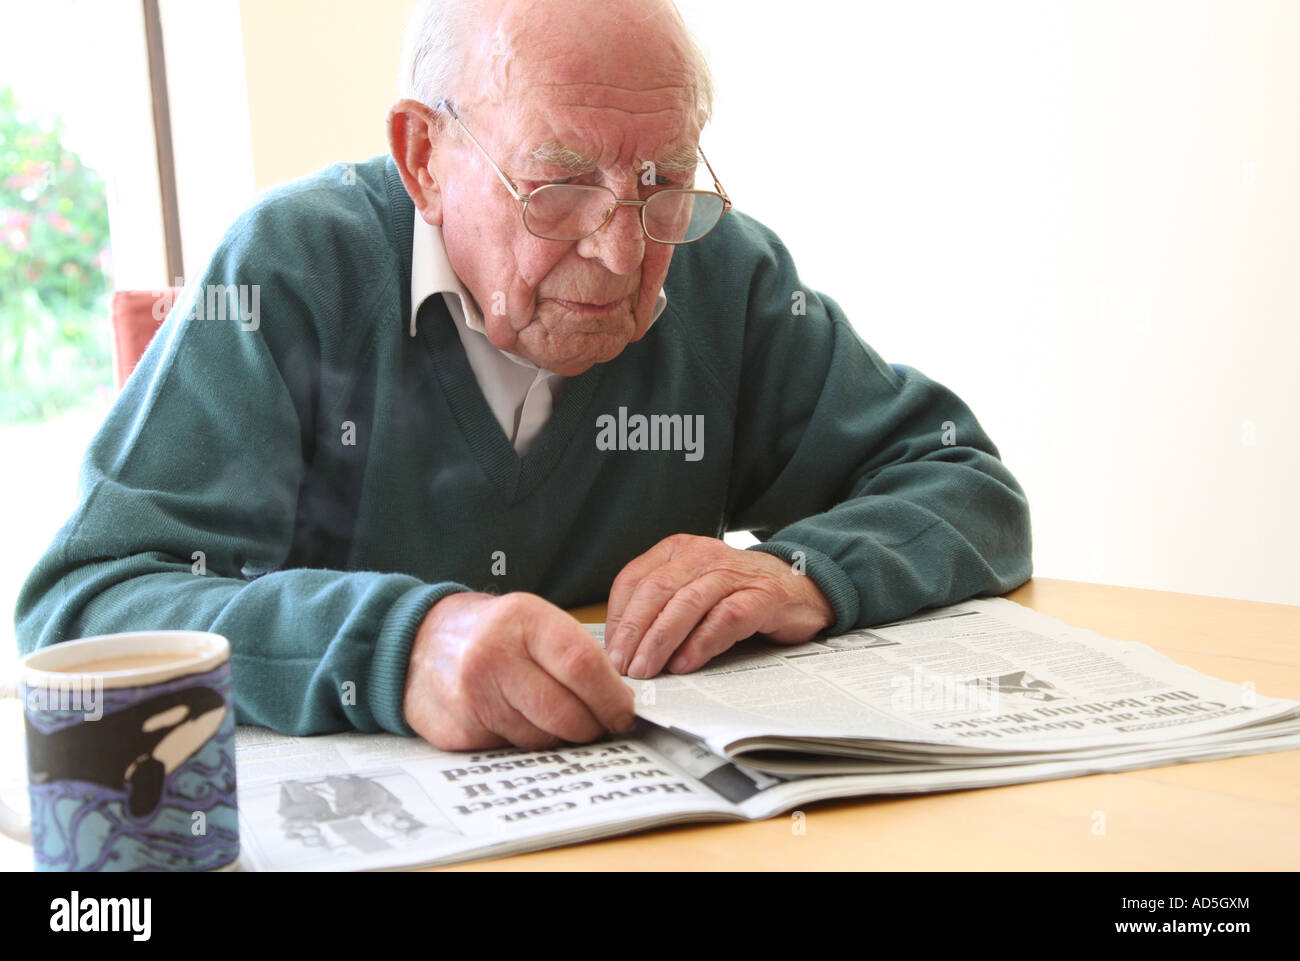 old man reading newspaper stock photo: 13311739 - alamy